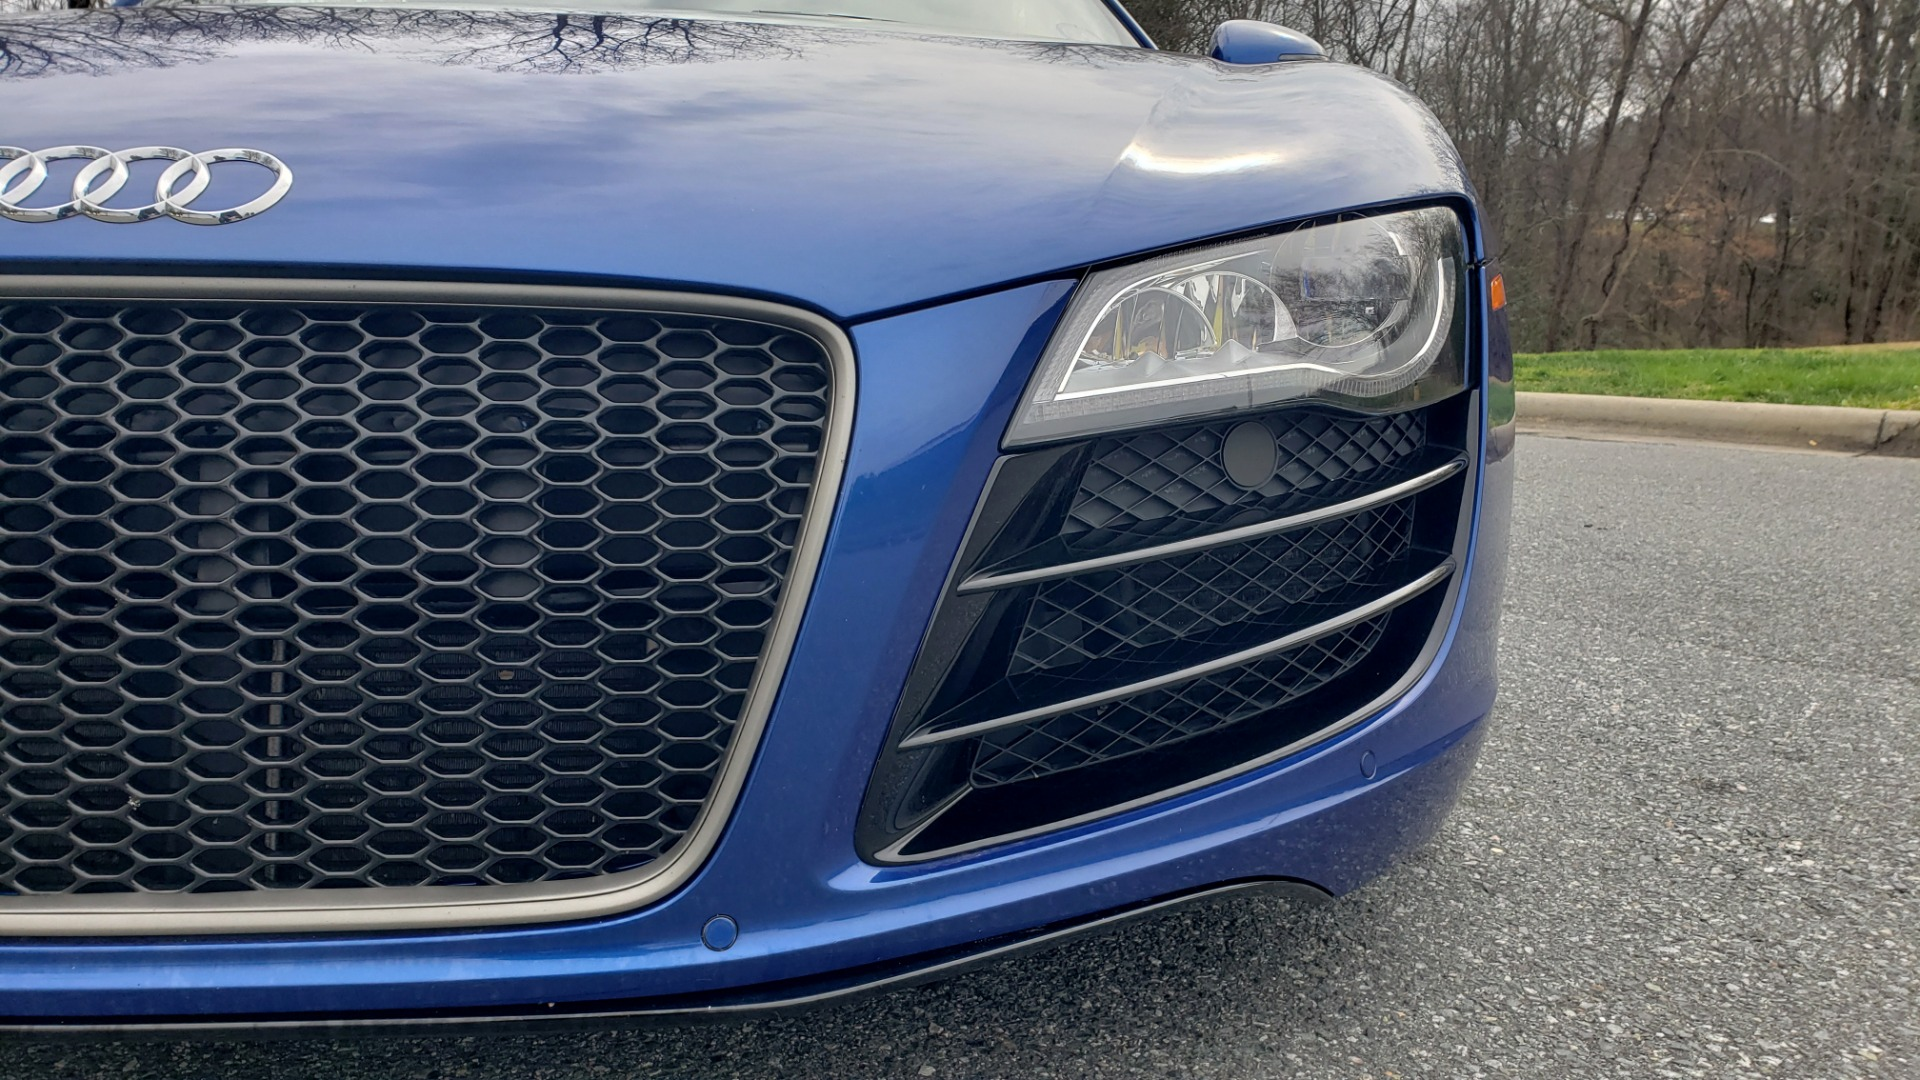 Used 2010 Audi R8 5.2L V10 / AWD / NAV / B&O SND / HTD STS / CUSTOM EXH & WHEELS for sale $78,000 at Formula Imports in Charlotte NC 28227 26